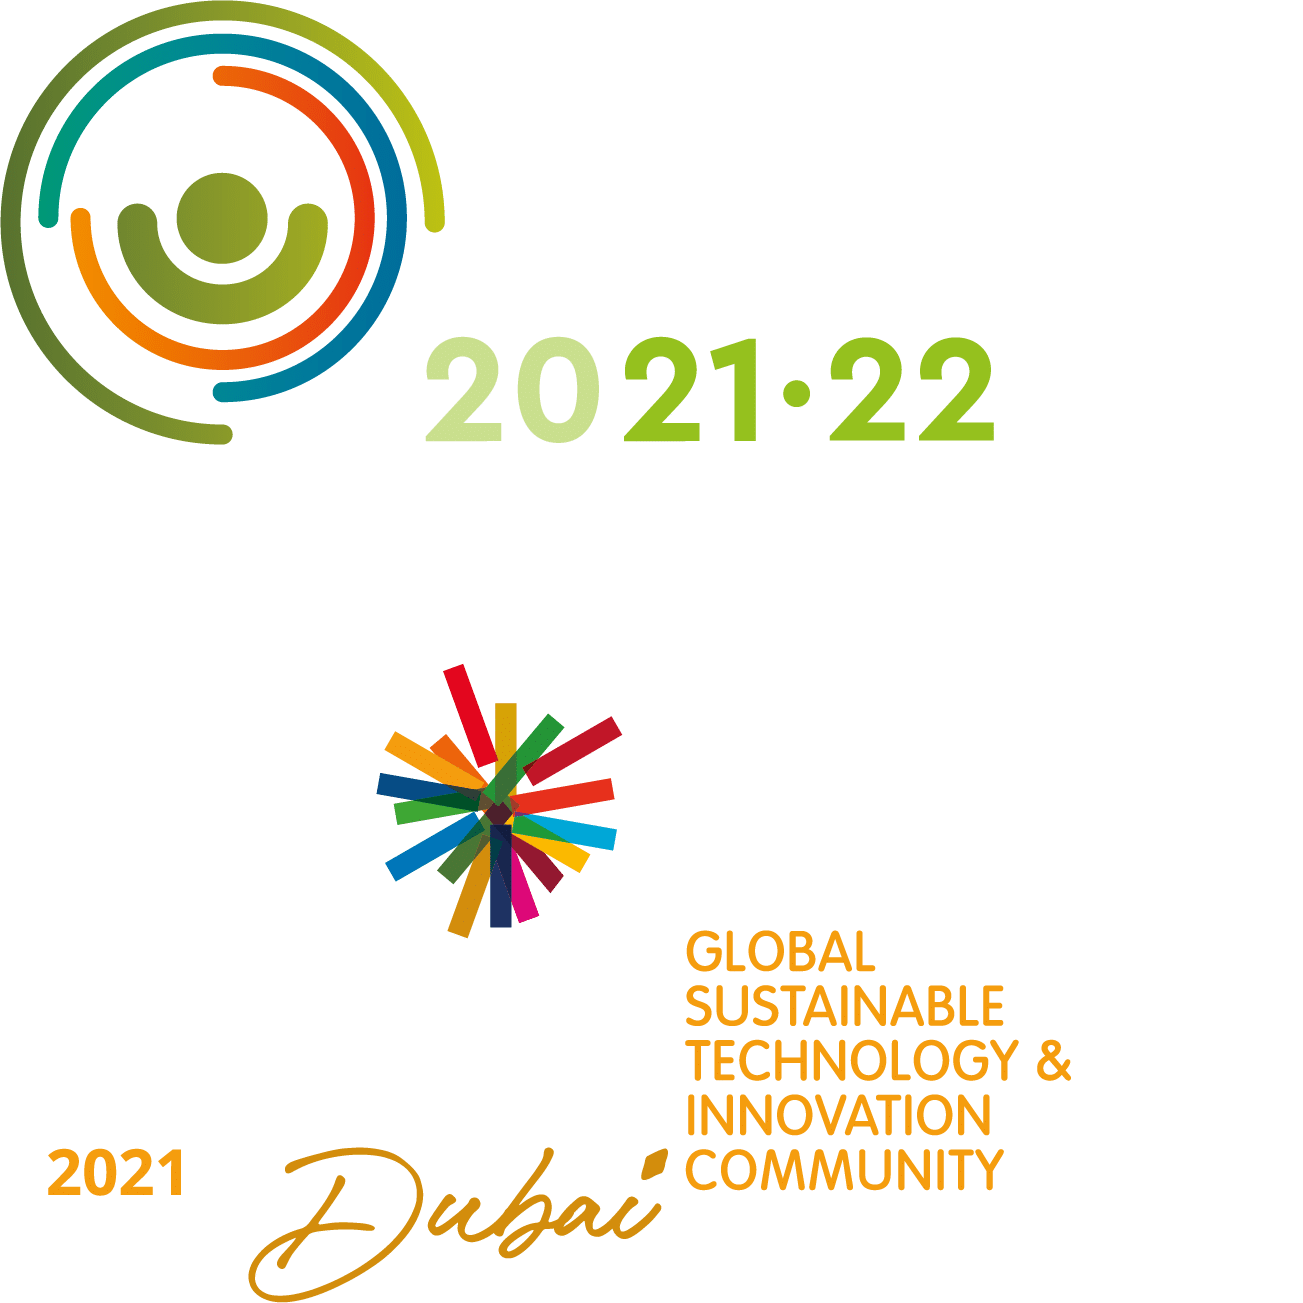 Quality Meets Sustainability